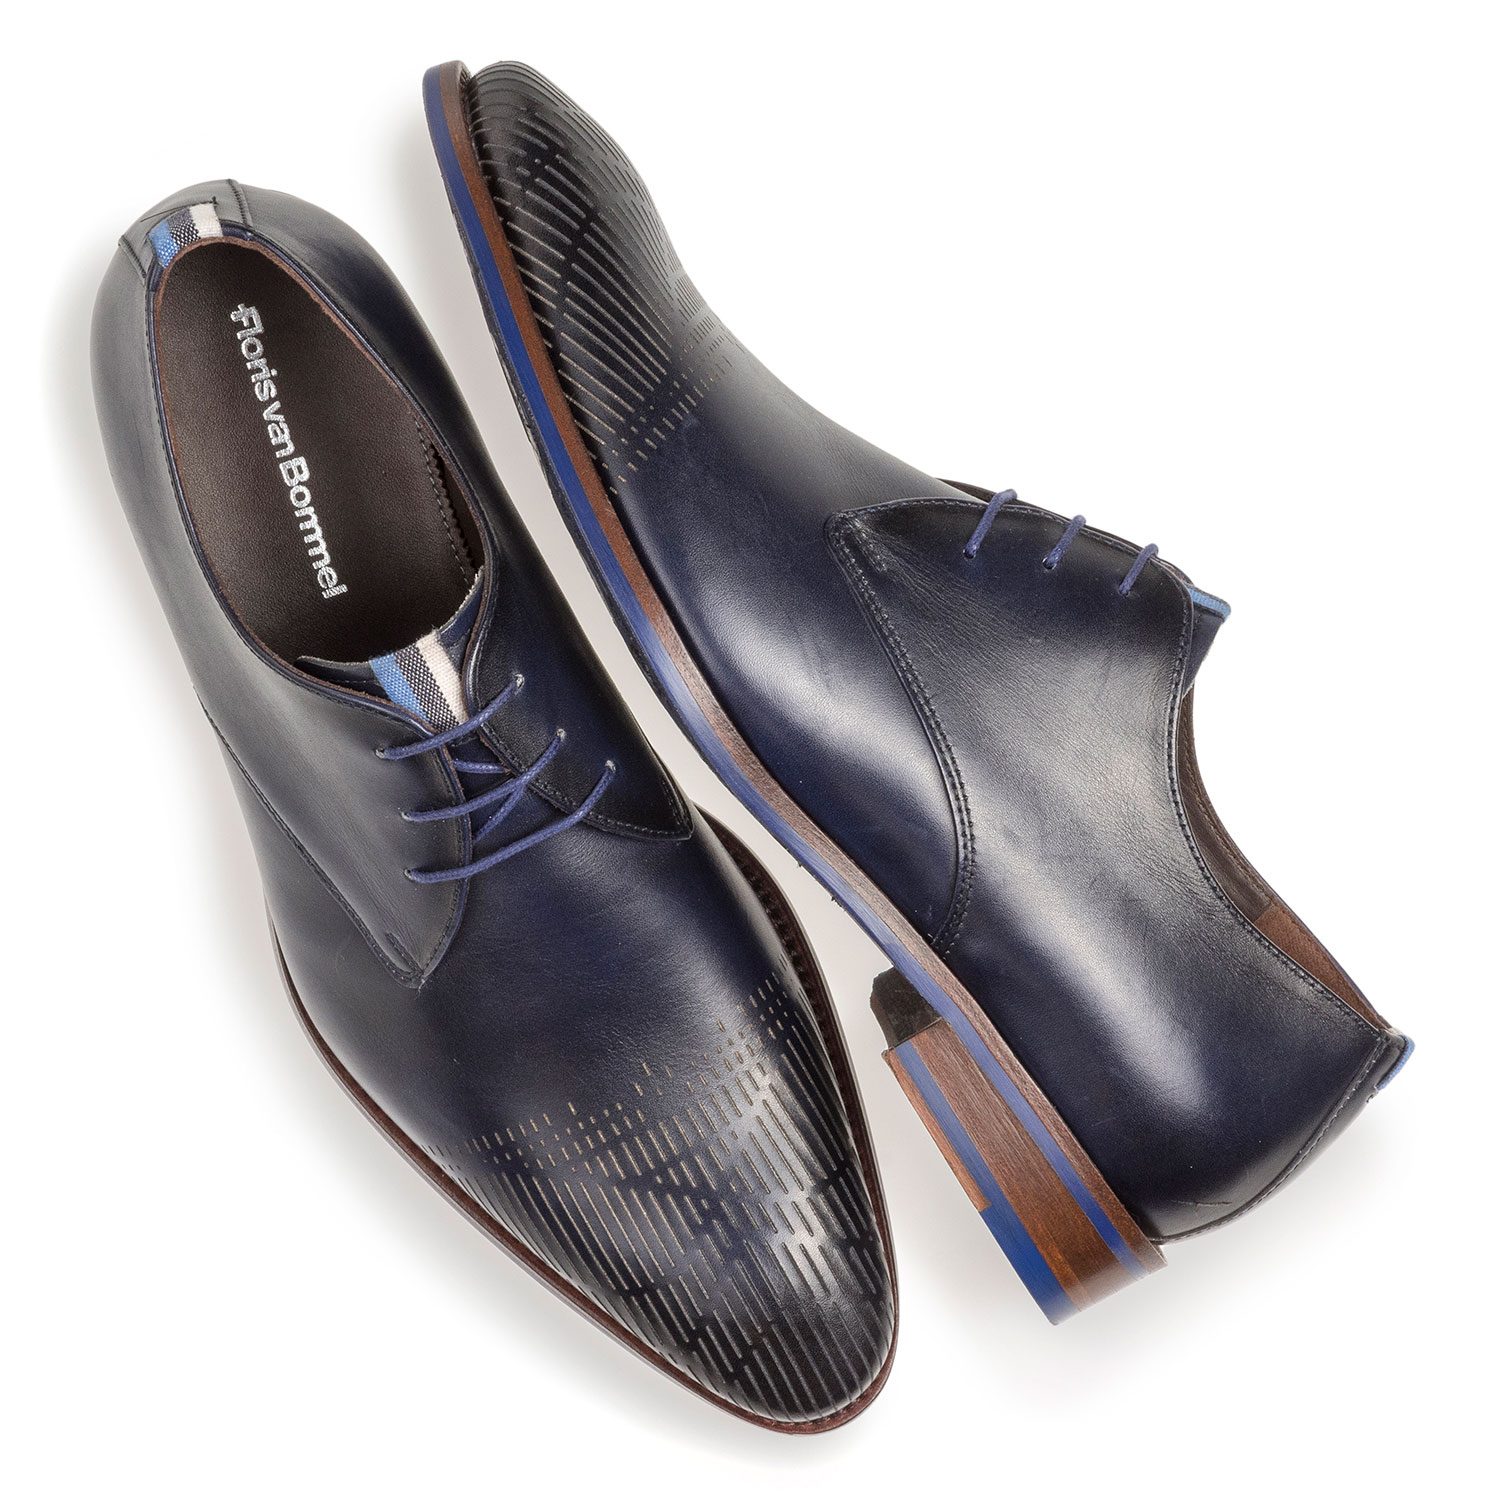 18276/01 - Dark blue calf leather lace shoe